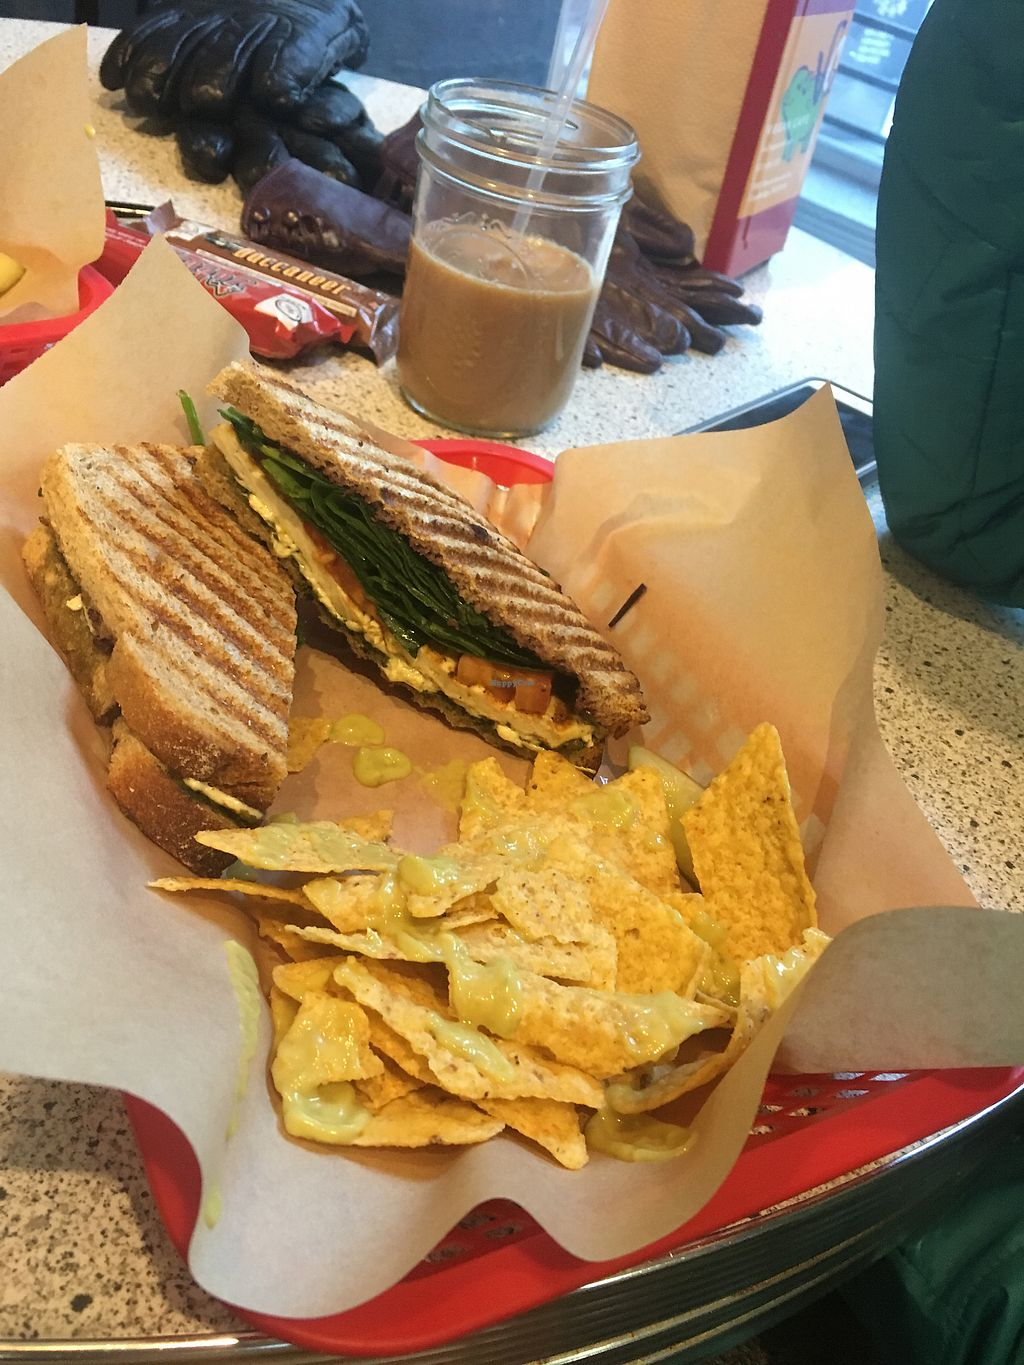 """Photo of VO2 Vegan Cafe  by <a href=""""/members/profile/770veg"""">770veg</a> <br/>The North End <br/> December 17, 2017  - <a href='/contact/abuse/image/34862/336503'>Report</a>"""